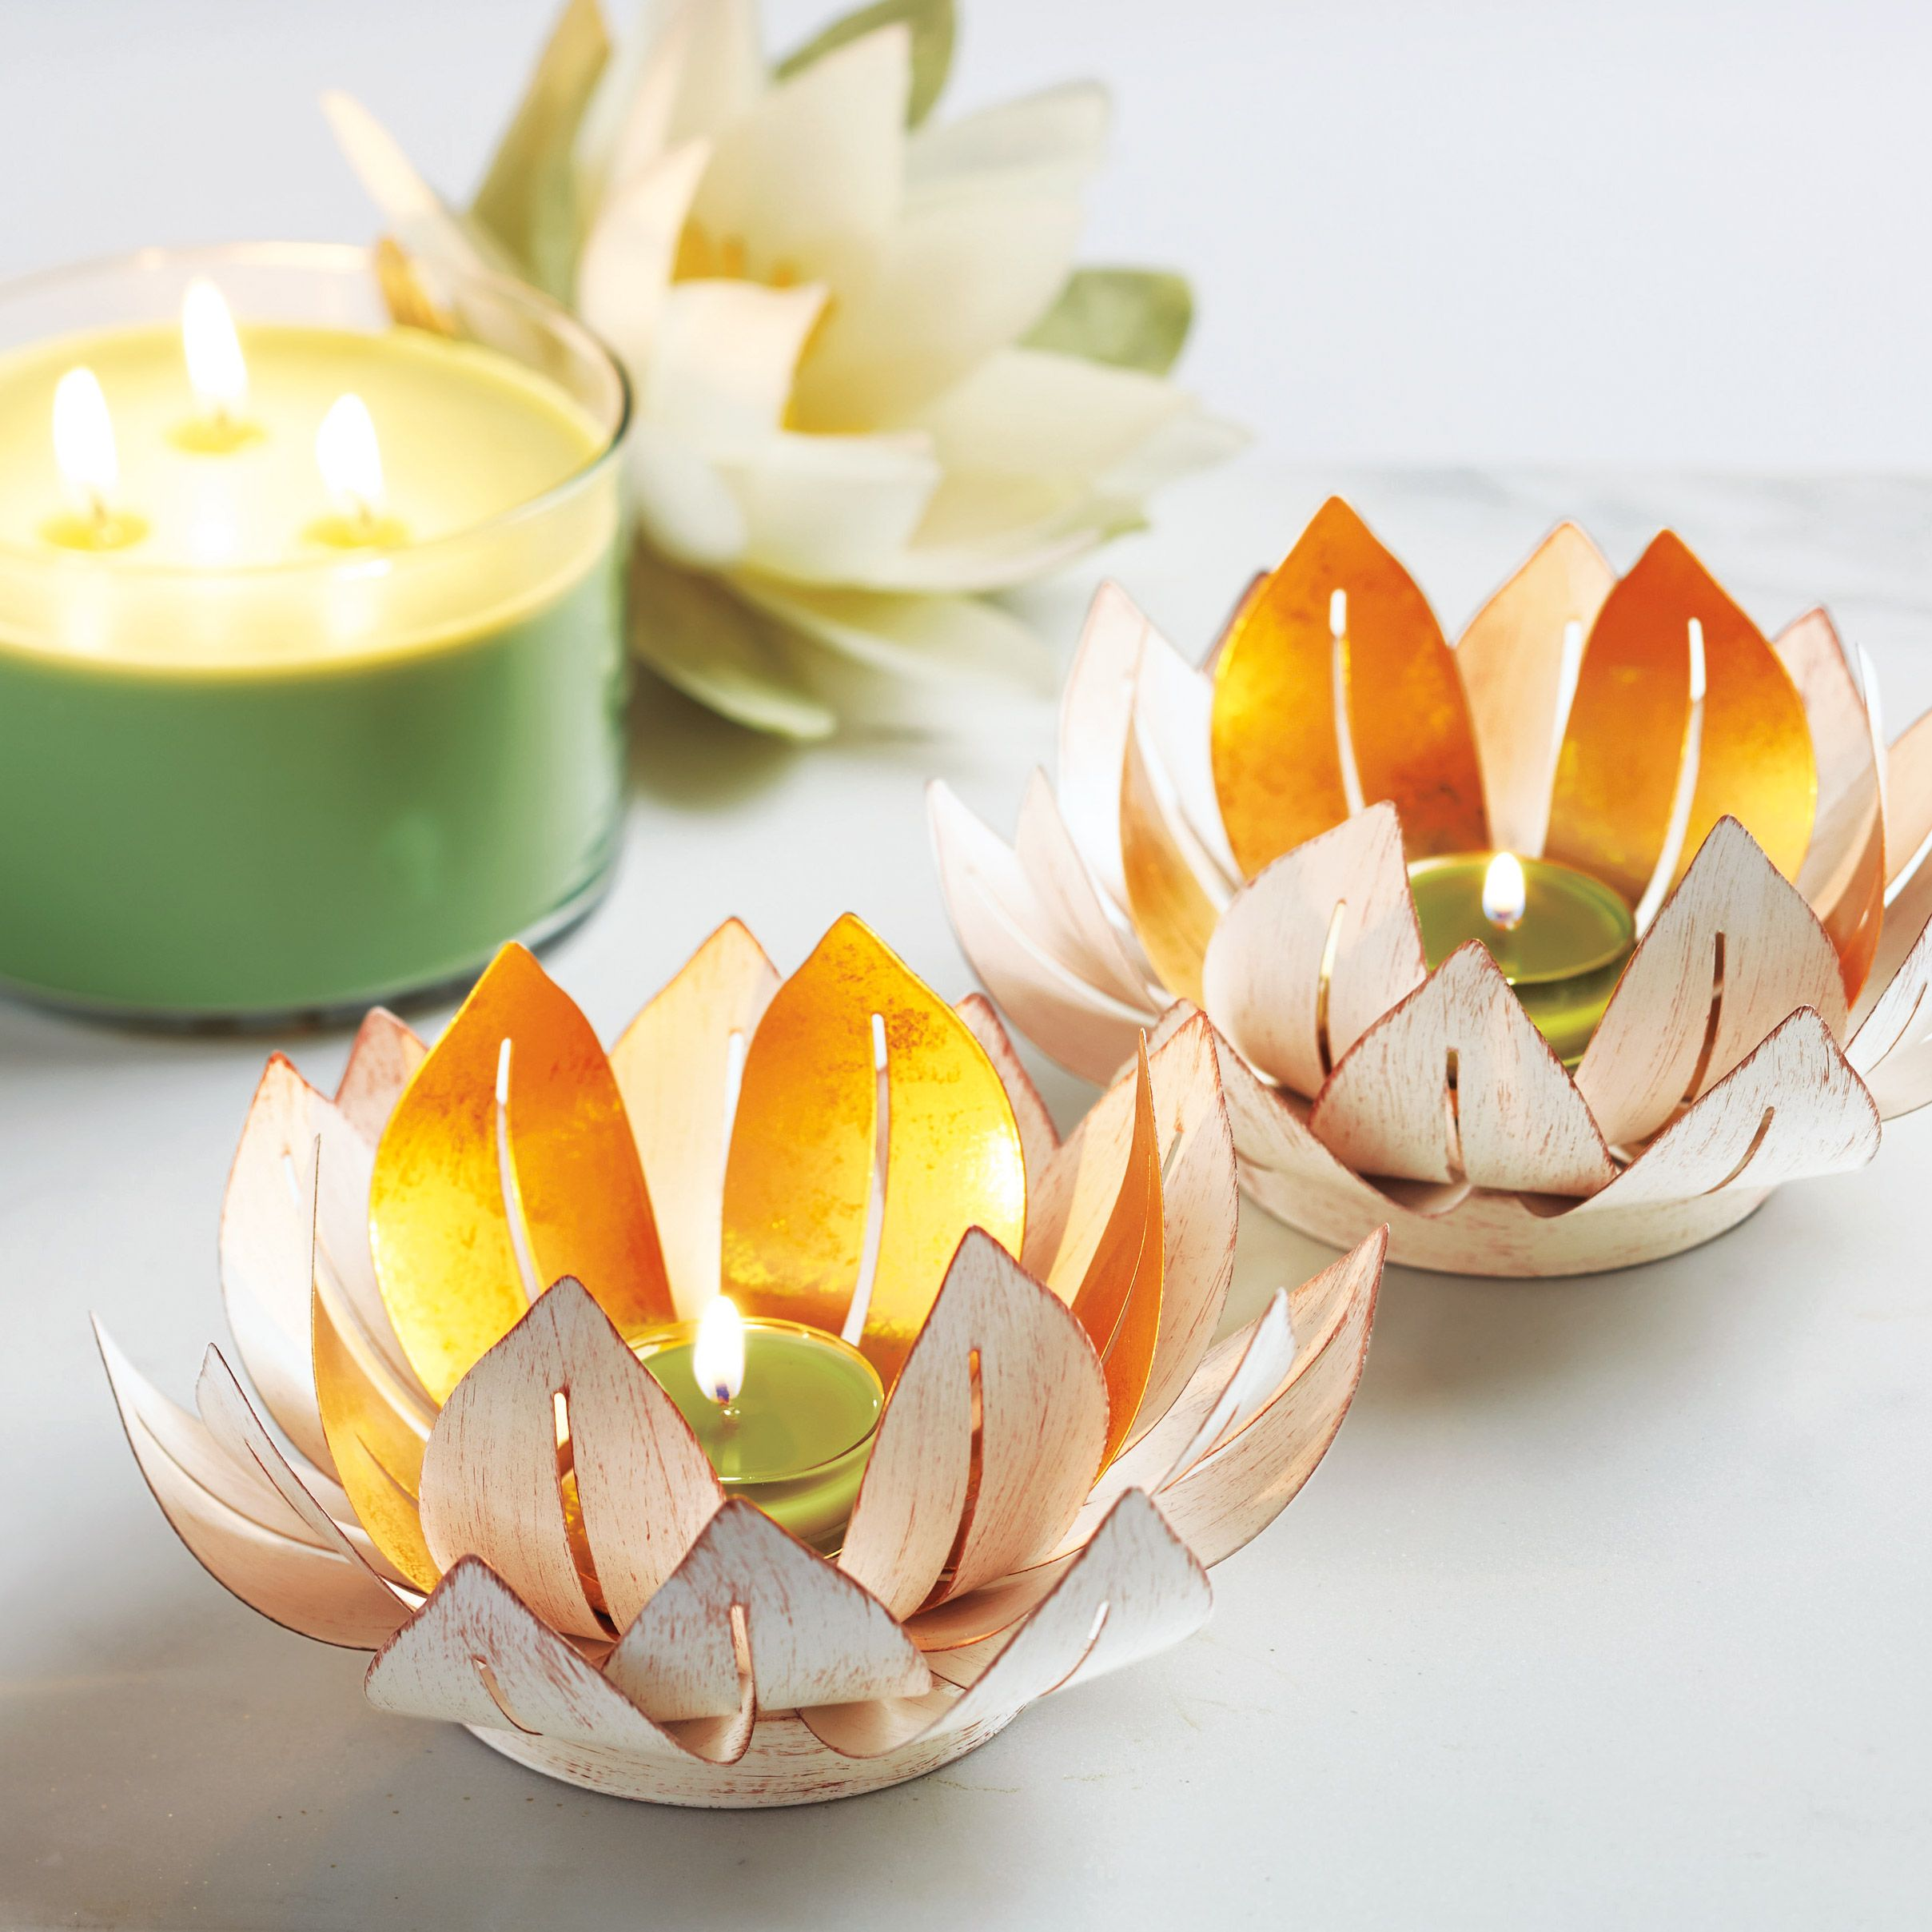 Exclusive designs you'll only find at PartyLite! #partylite #candles #decoration #cocktails #drinkit